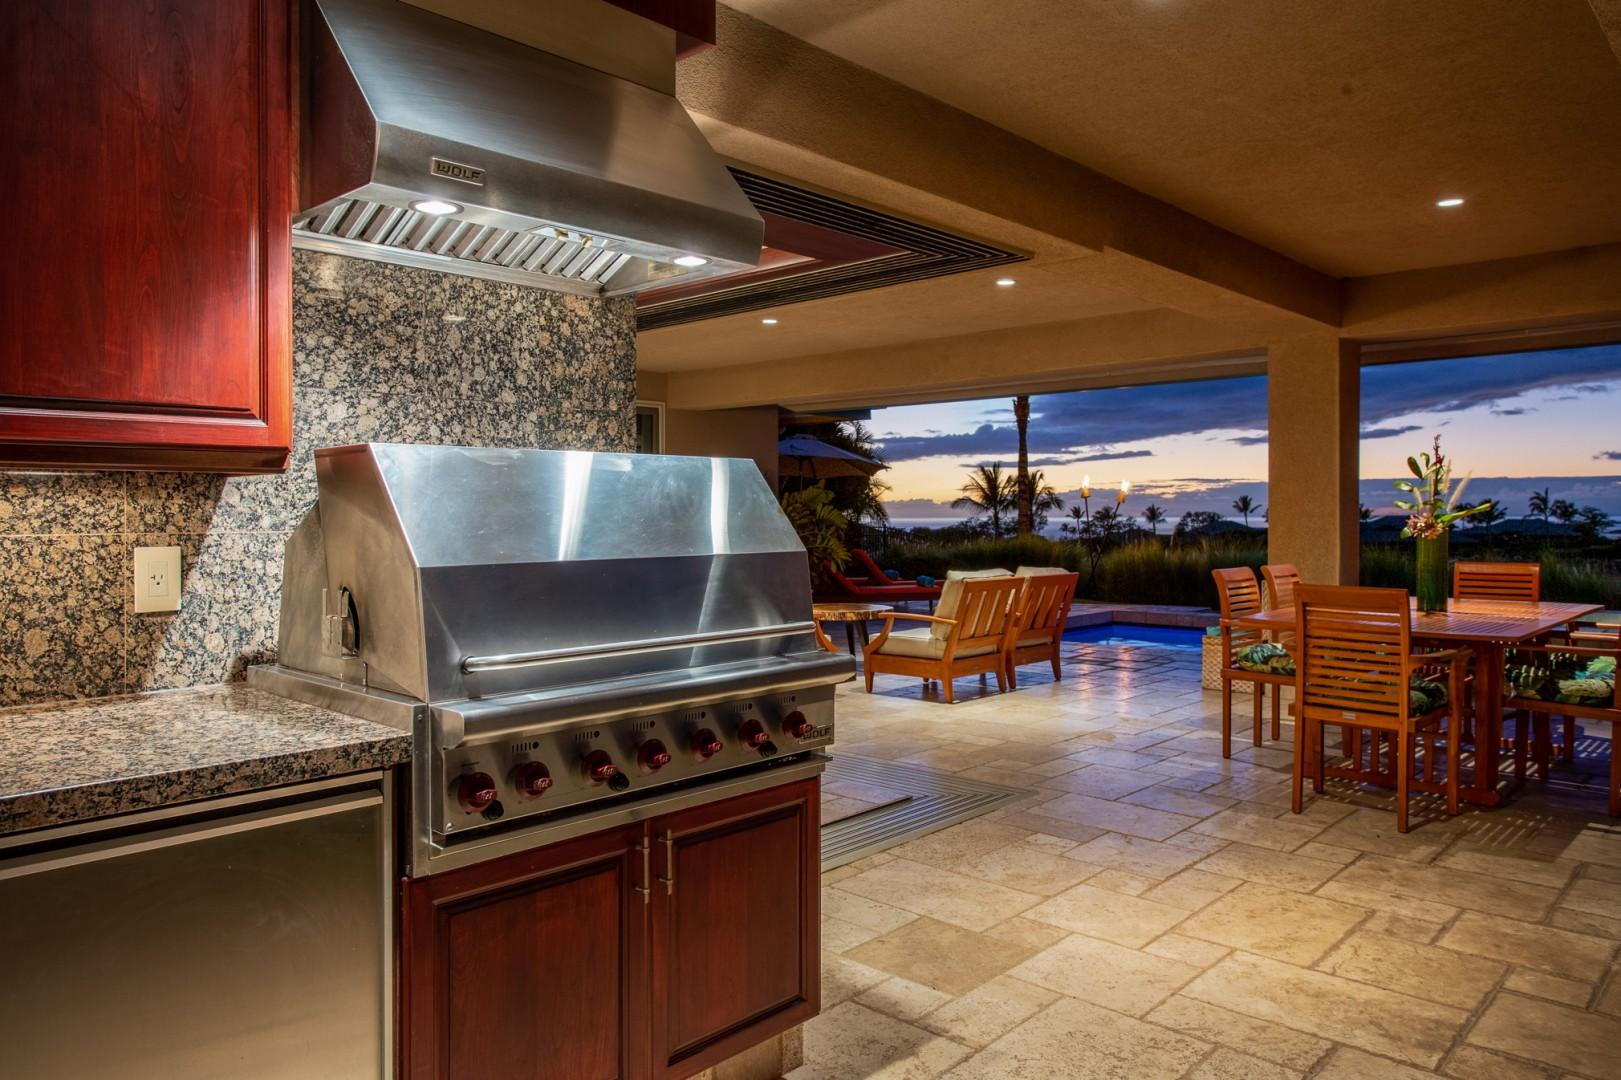 Built-in barbecue area at sunset